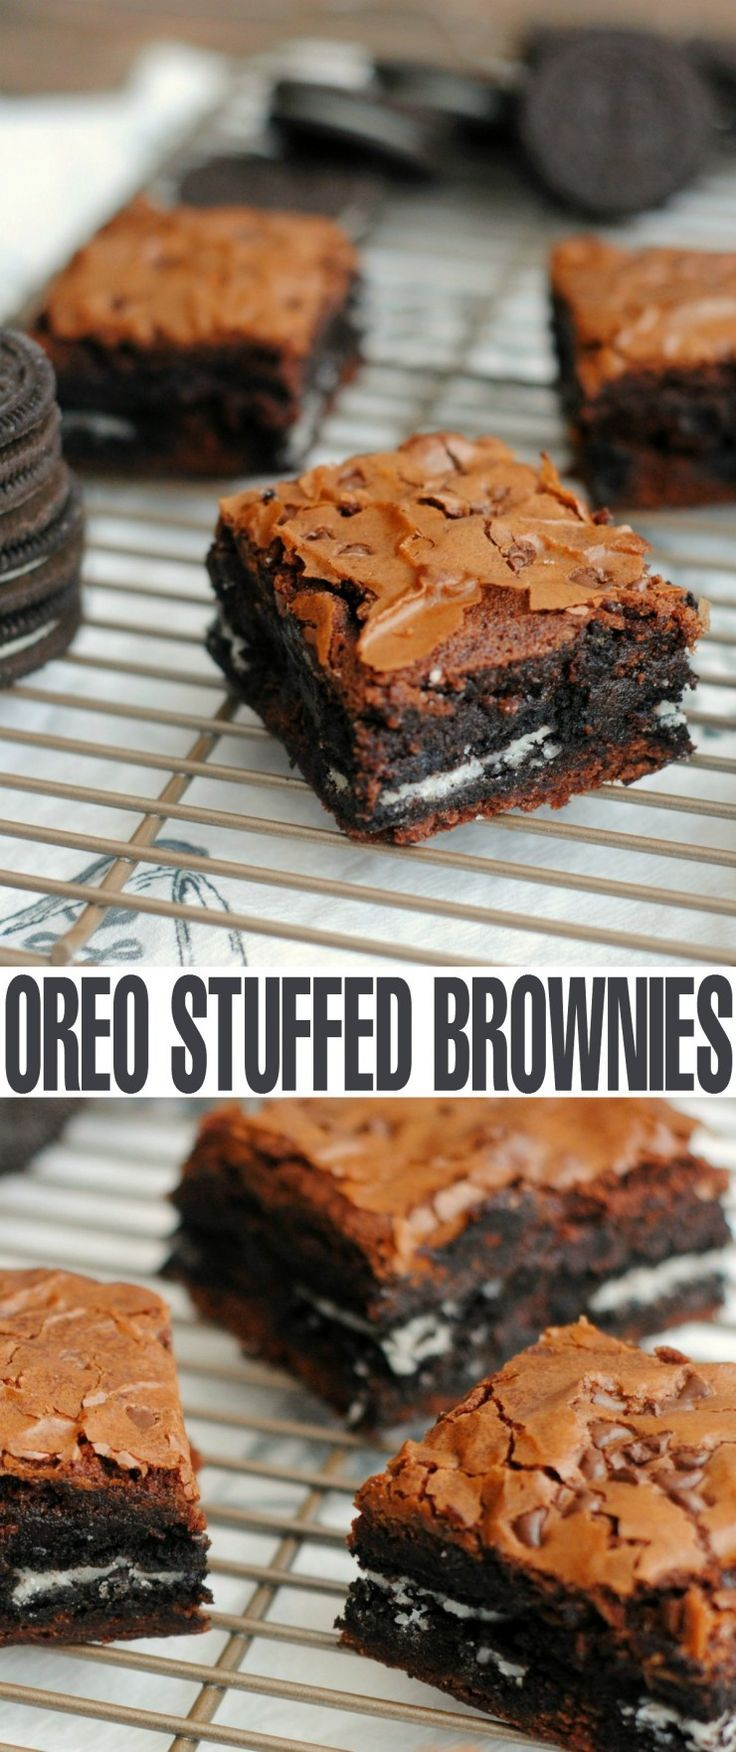 Delicious Oreo Stuffed Brownies - fudgy brownies layered with Oreos and topped with chocolate chips. Brownies don't get much better than this!: